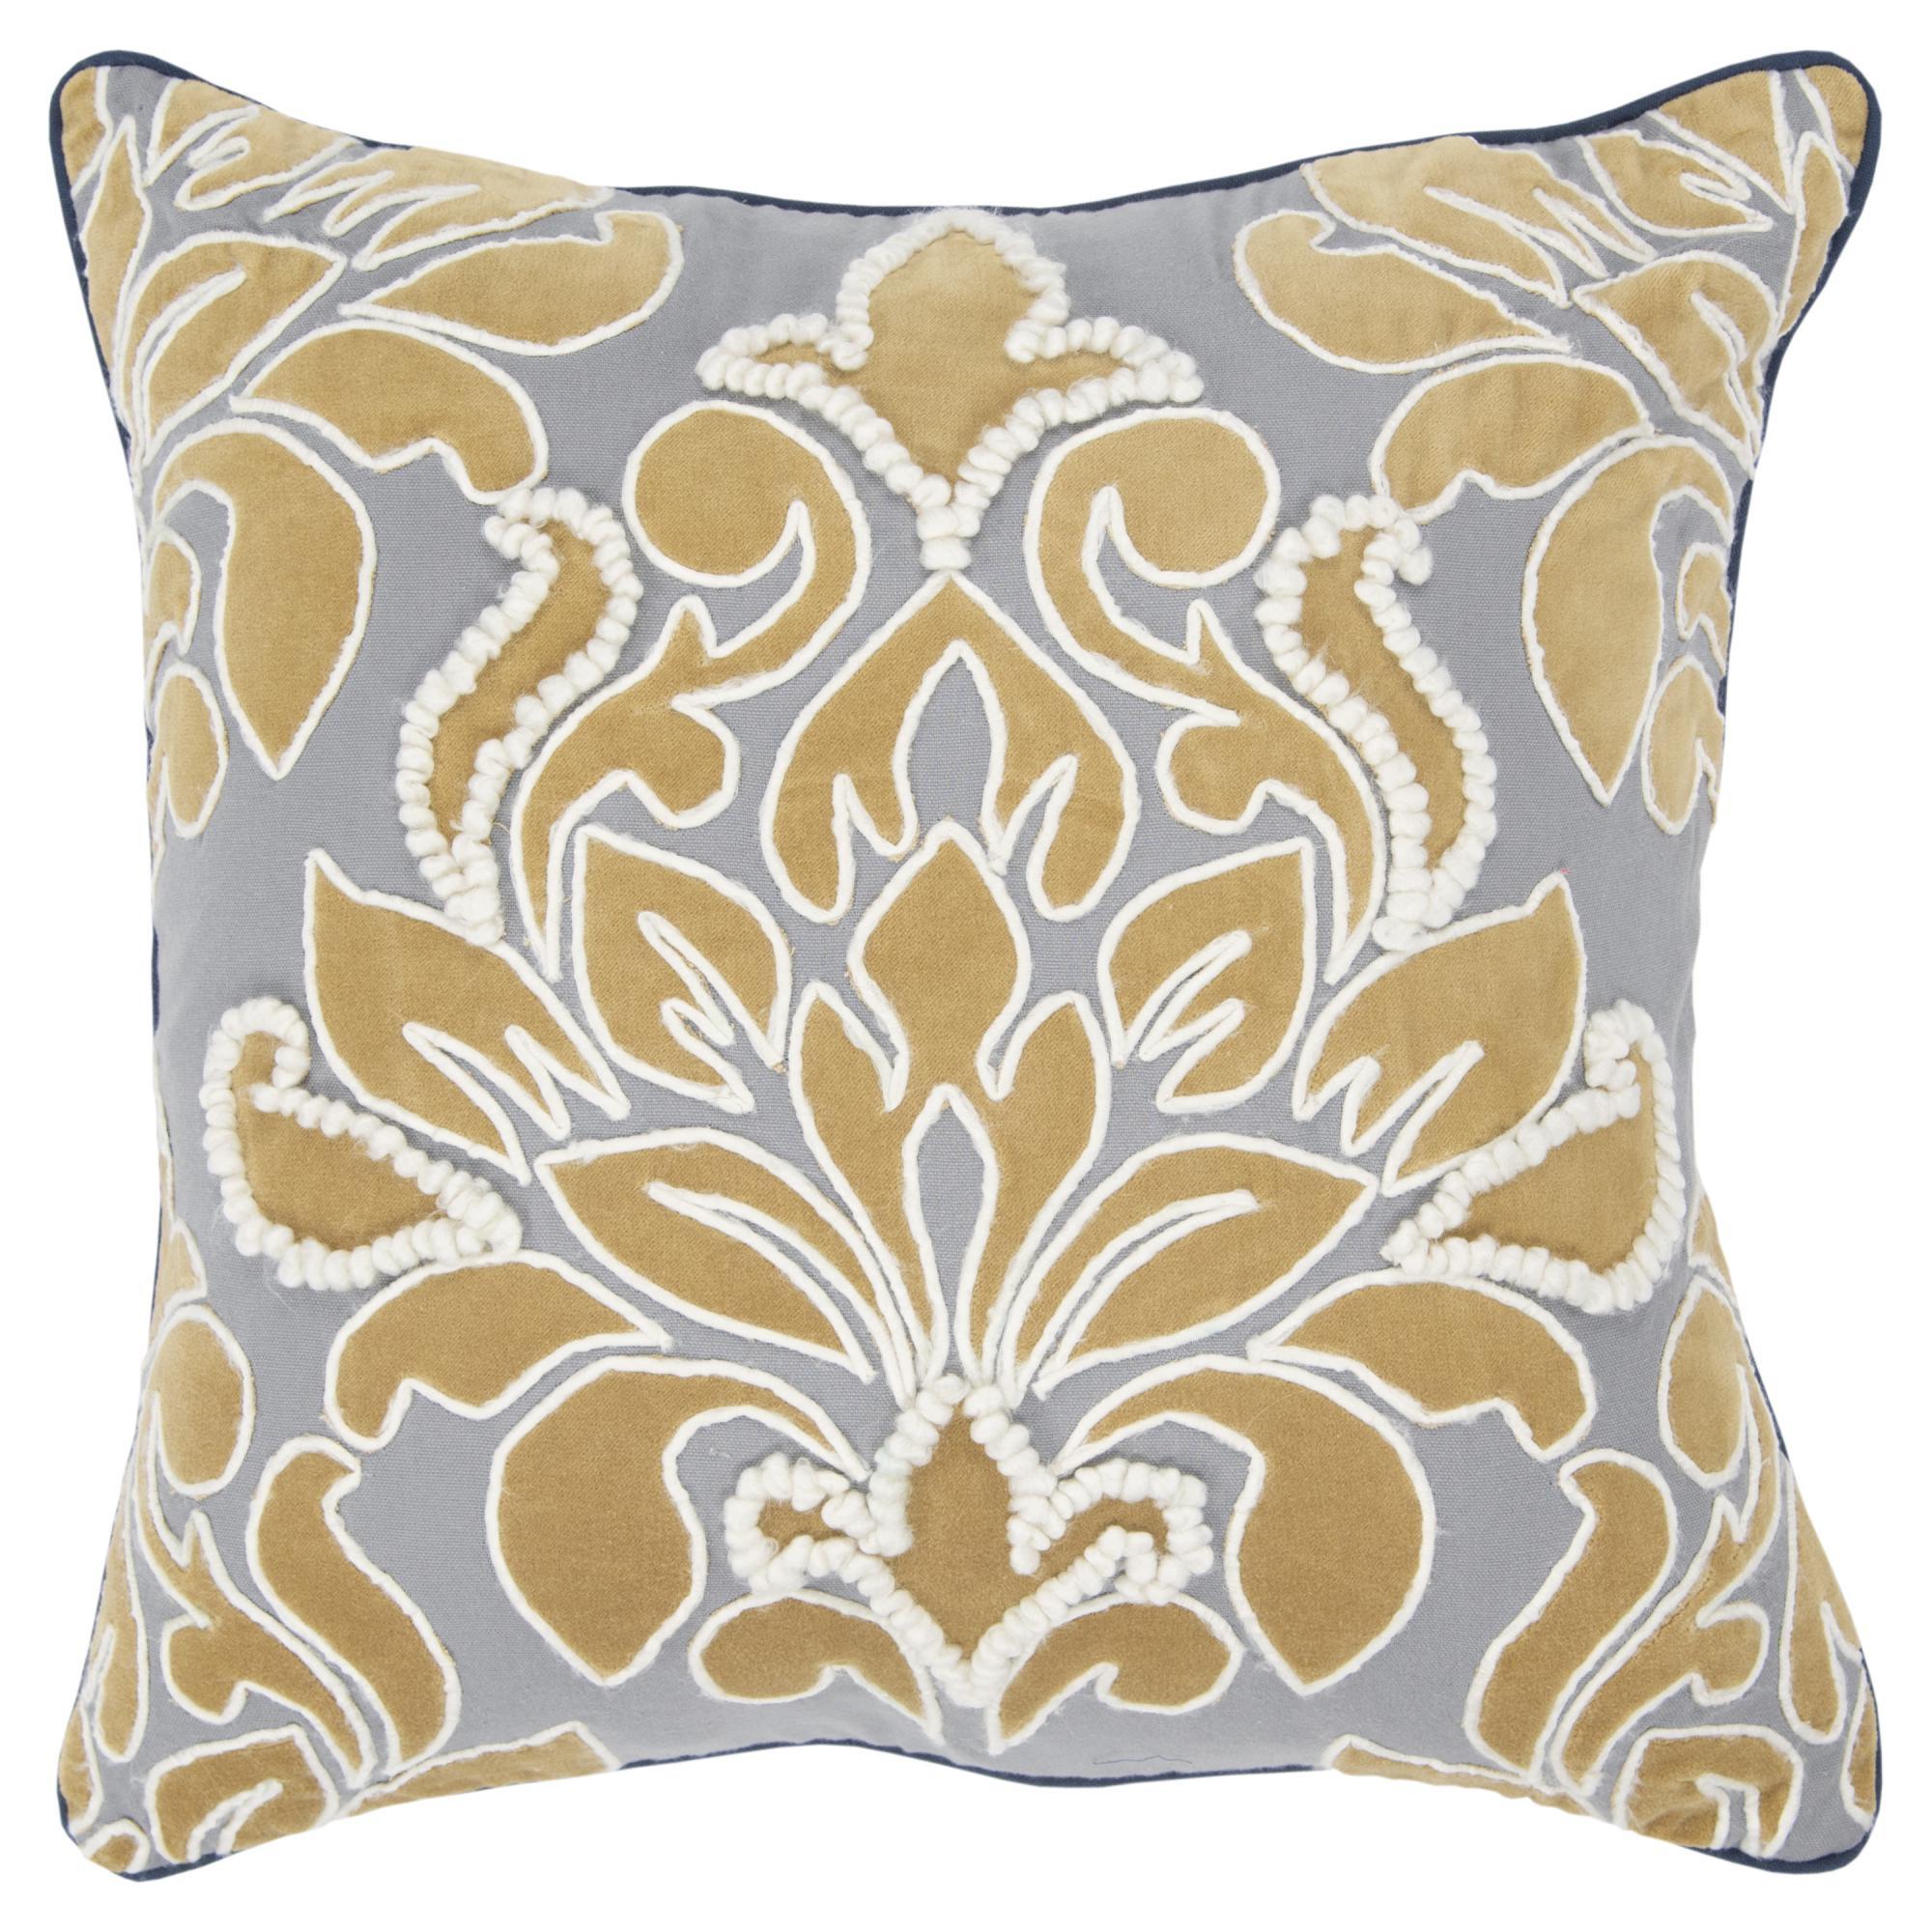 "Rizzy Home Decorative Downfilled Throw Pillow Damask 20""X20"" Gold"